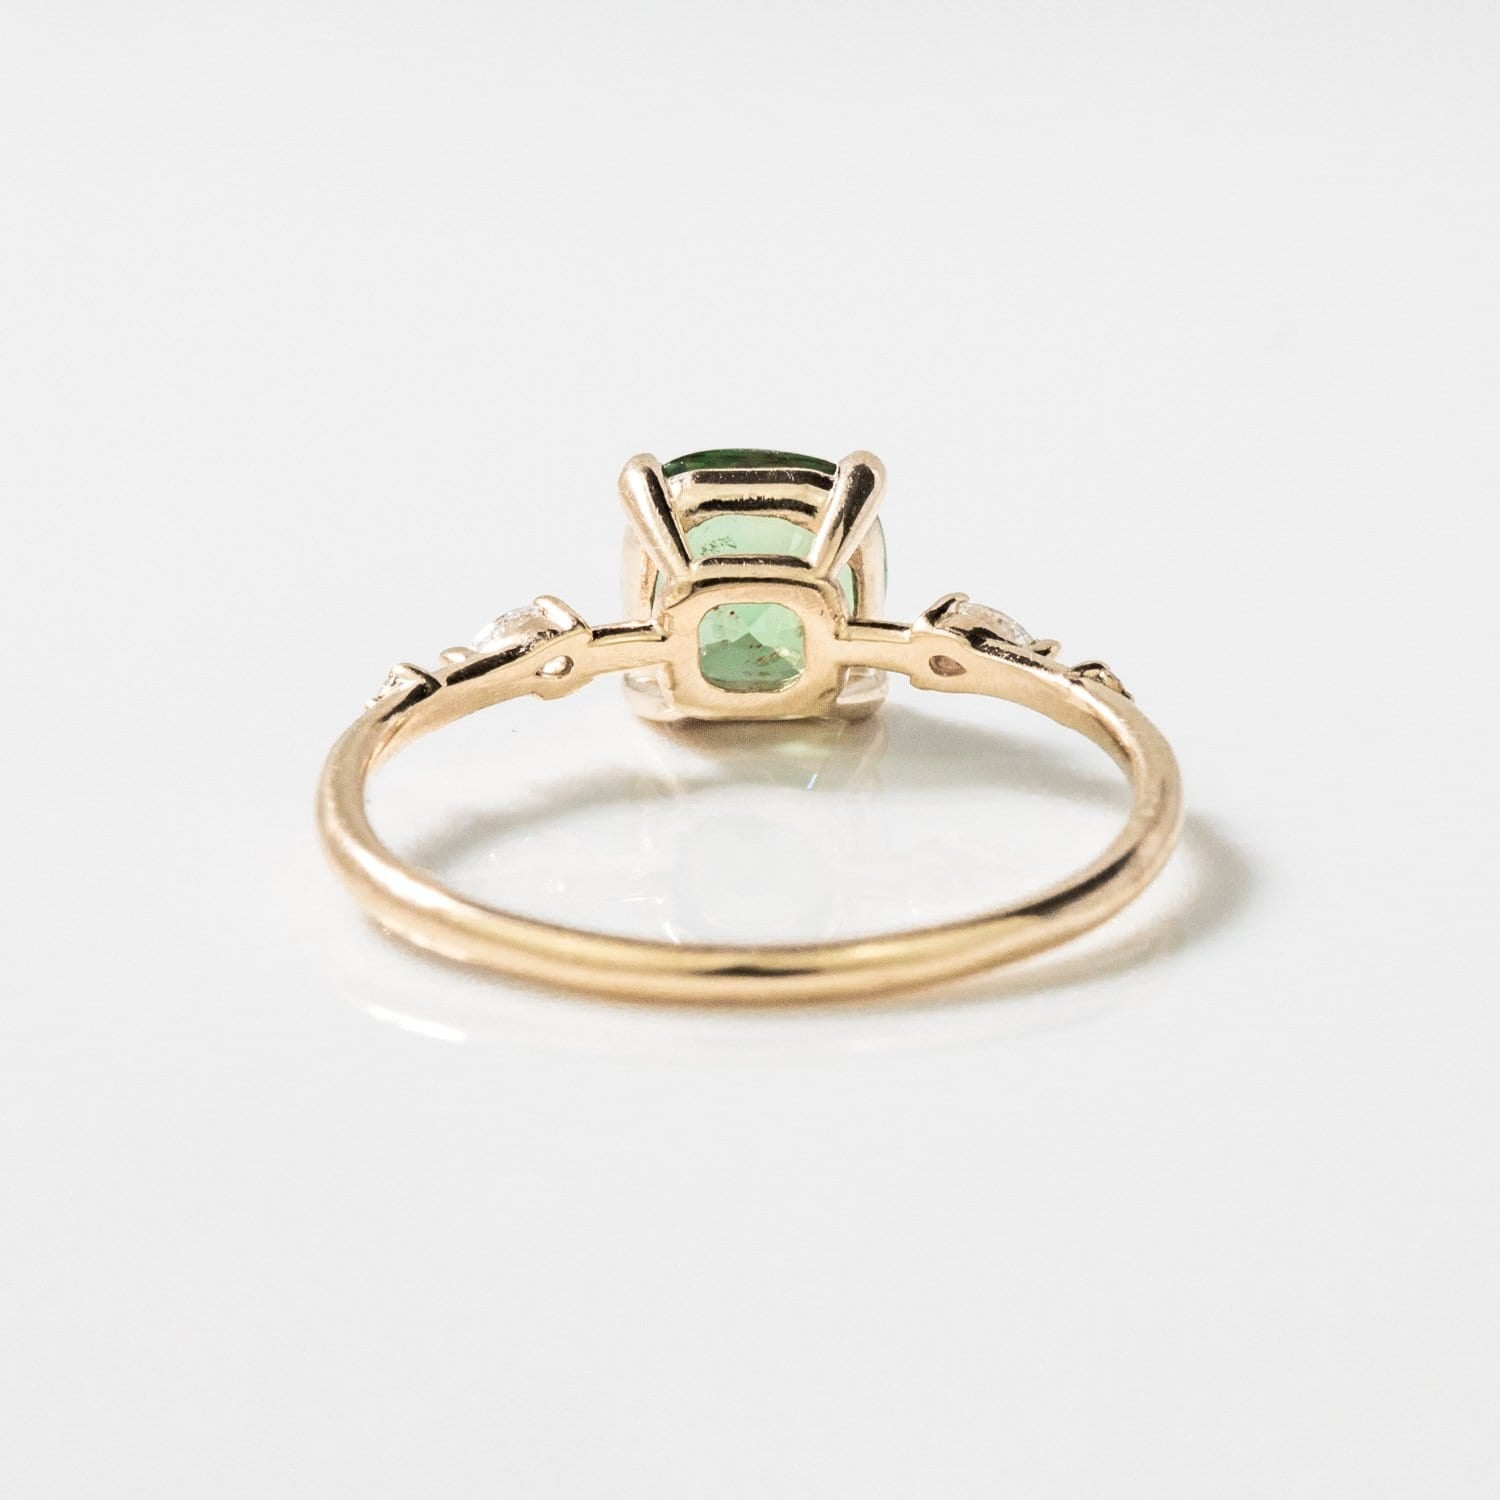 One of A Kind Aegean Ring - 14k Yellow Gold, Moss Green Sapphire